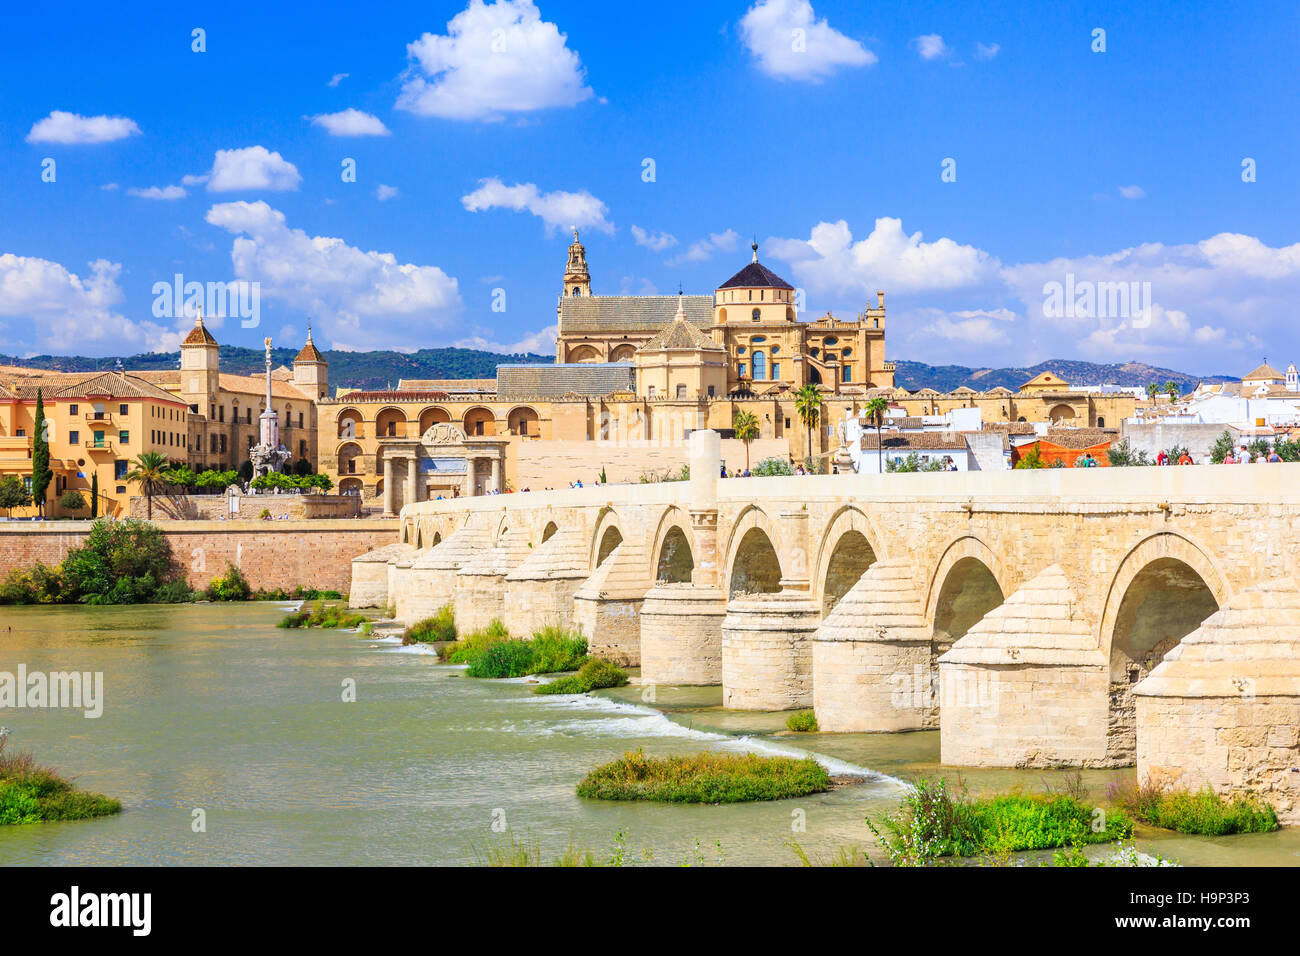 Cordoba, Spain. Roman Bridge and Mosque-Cathedral on the Guadalquivir River. - Stock Image